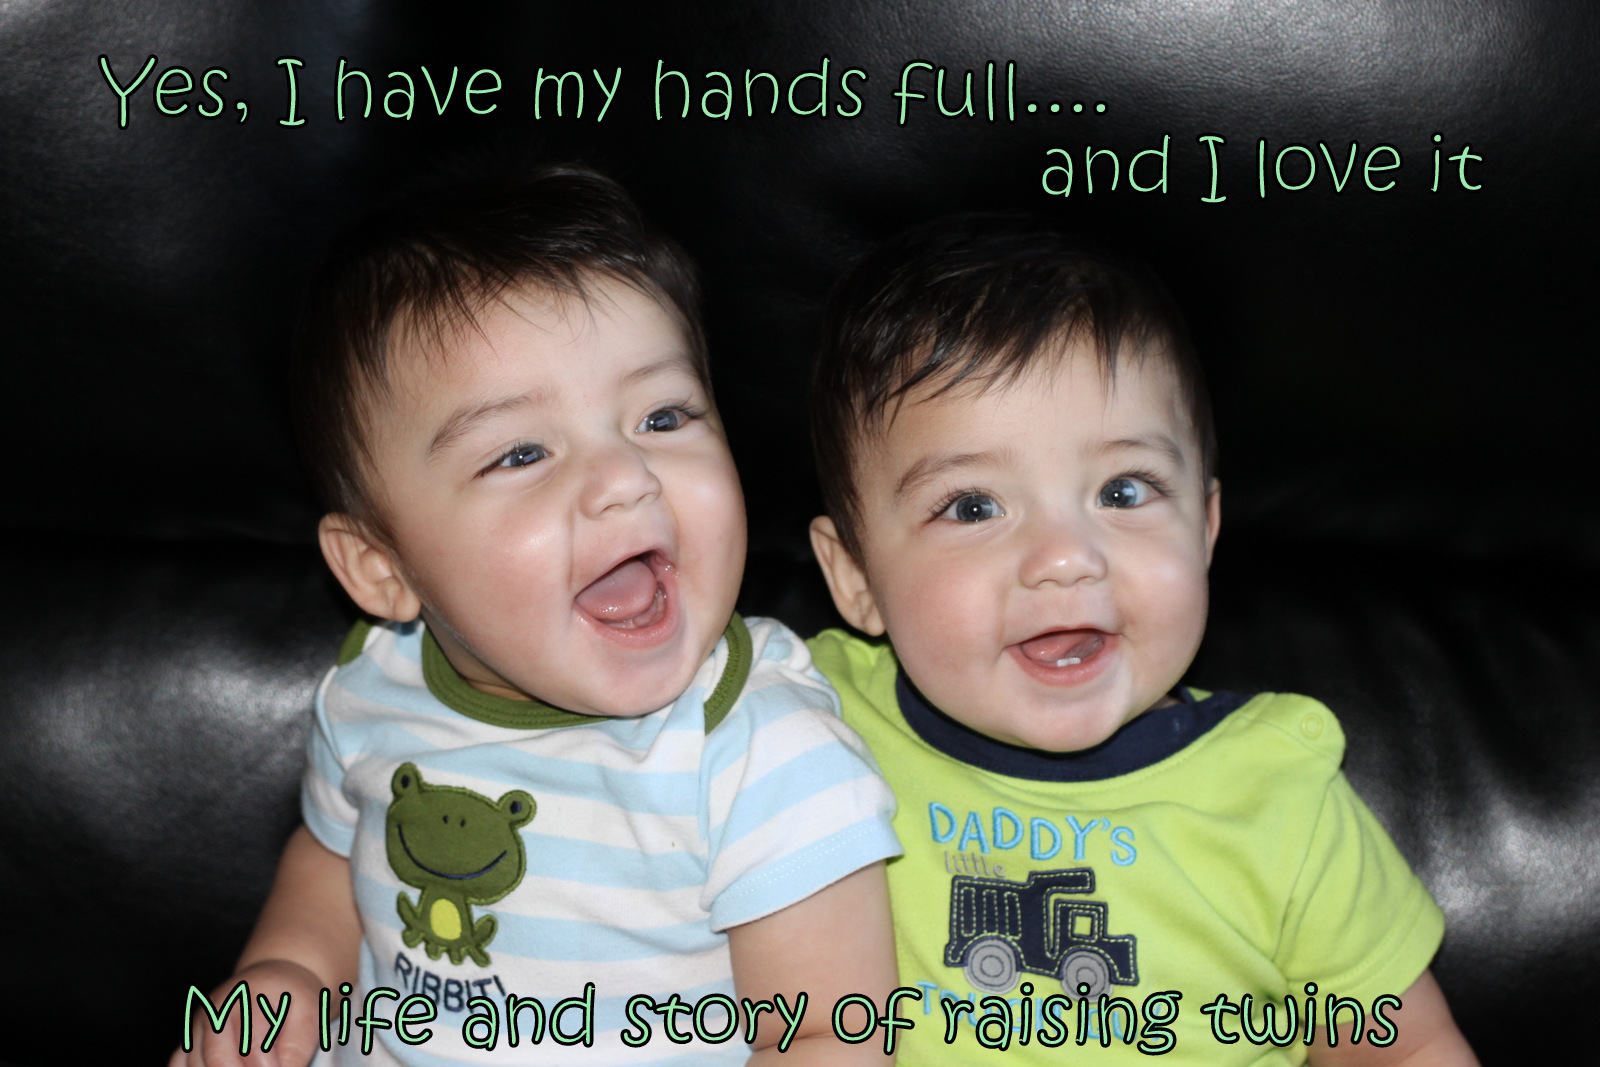 Yes, I have my hands full....